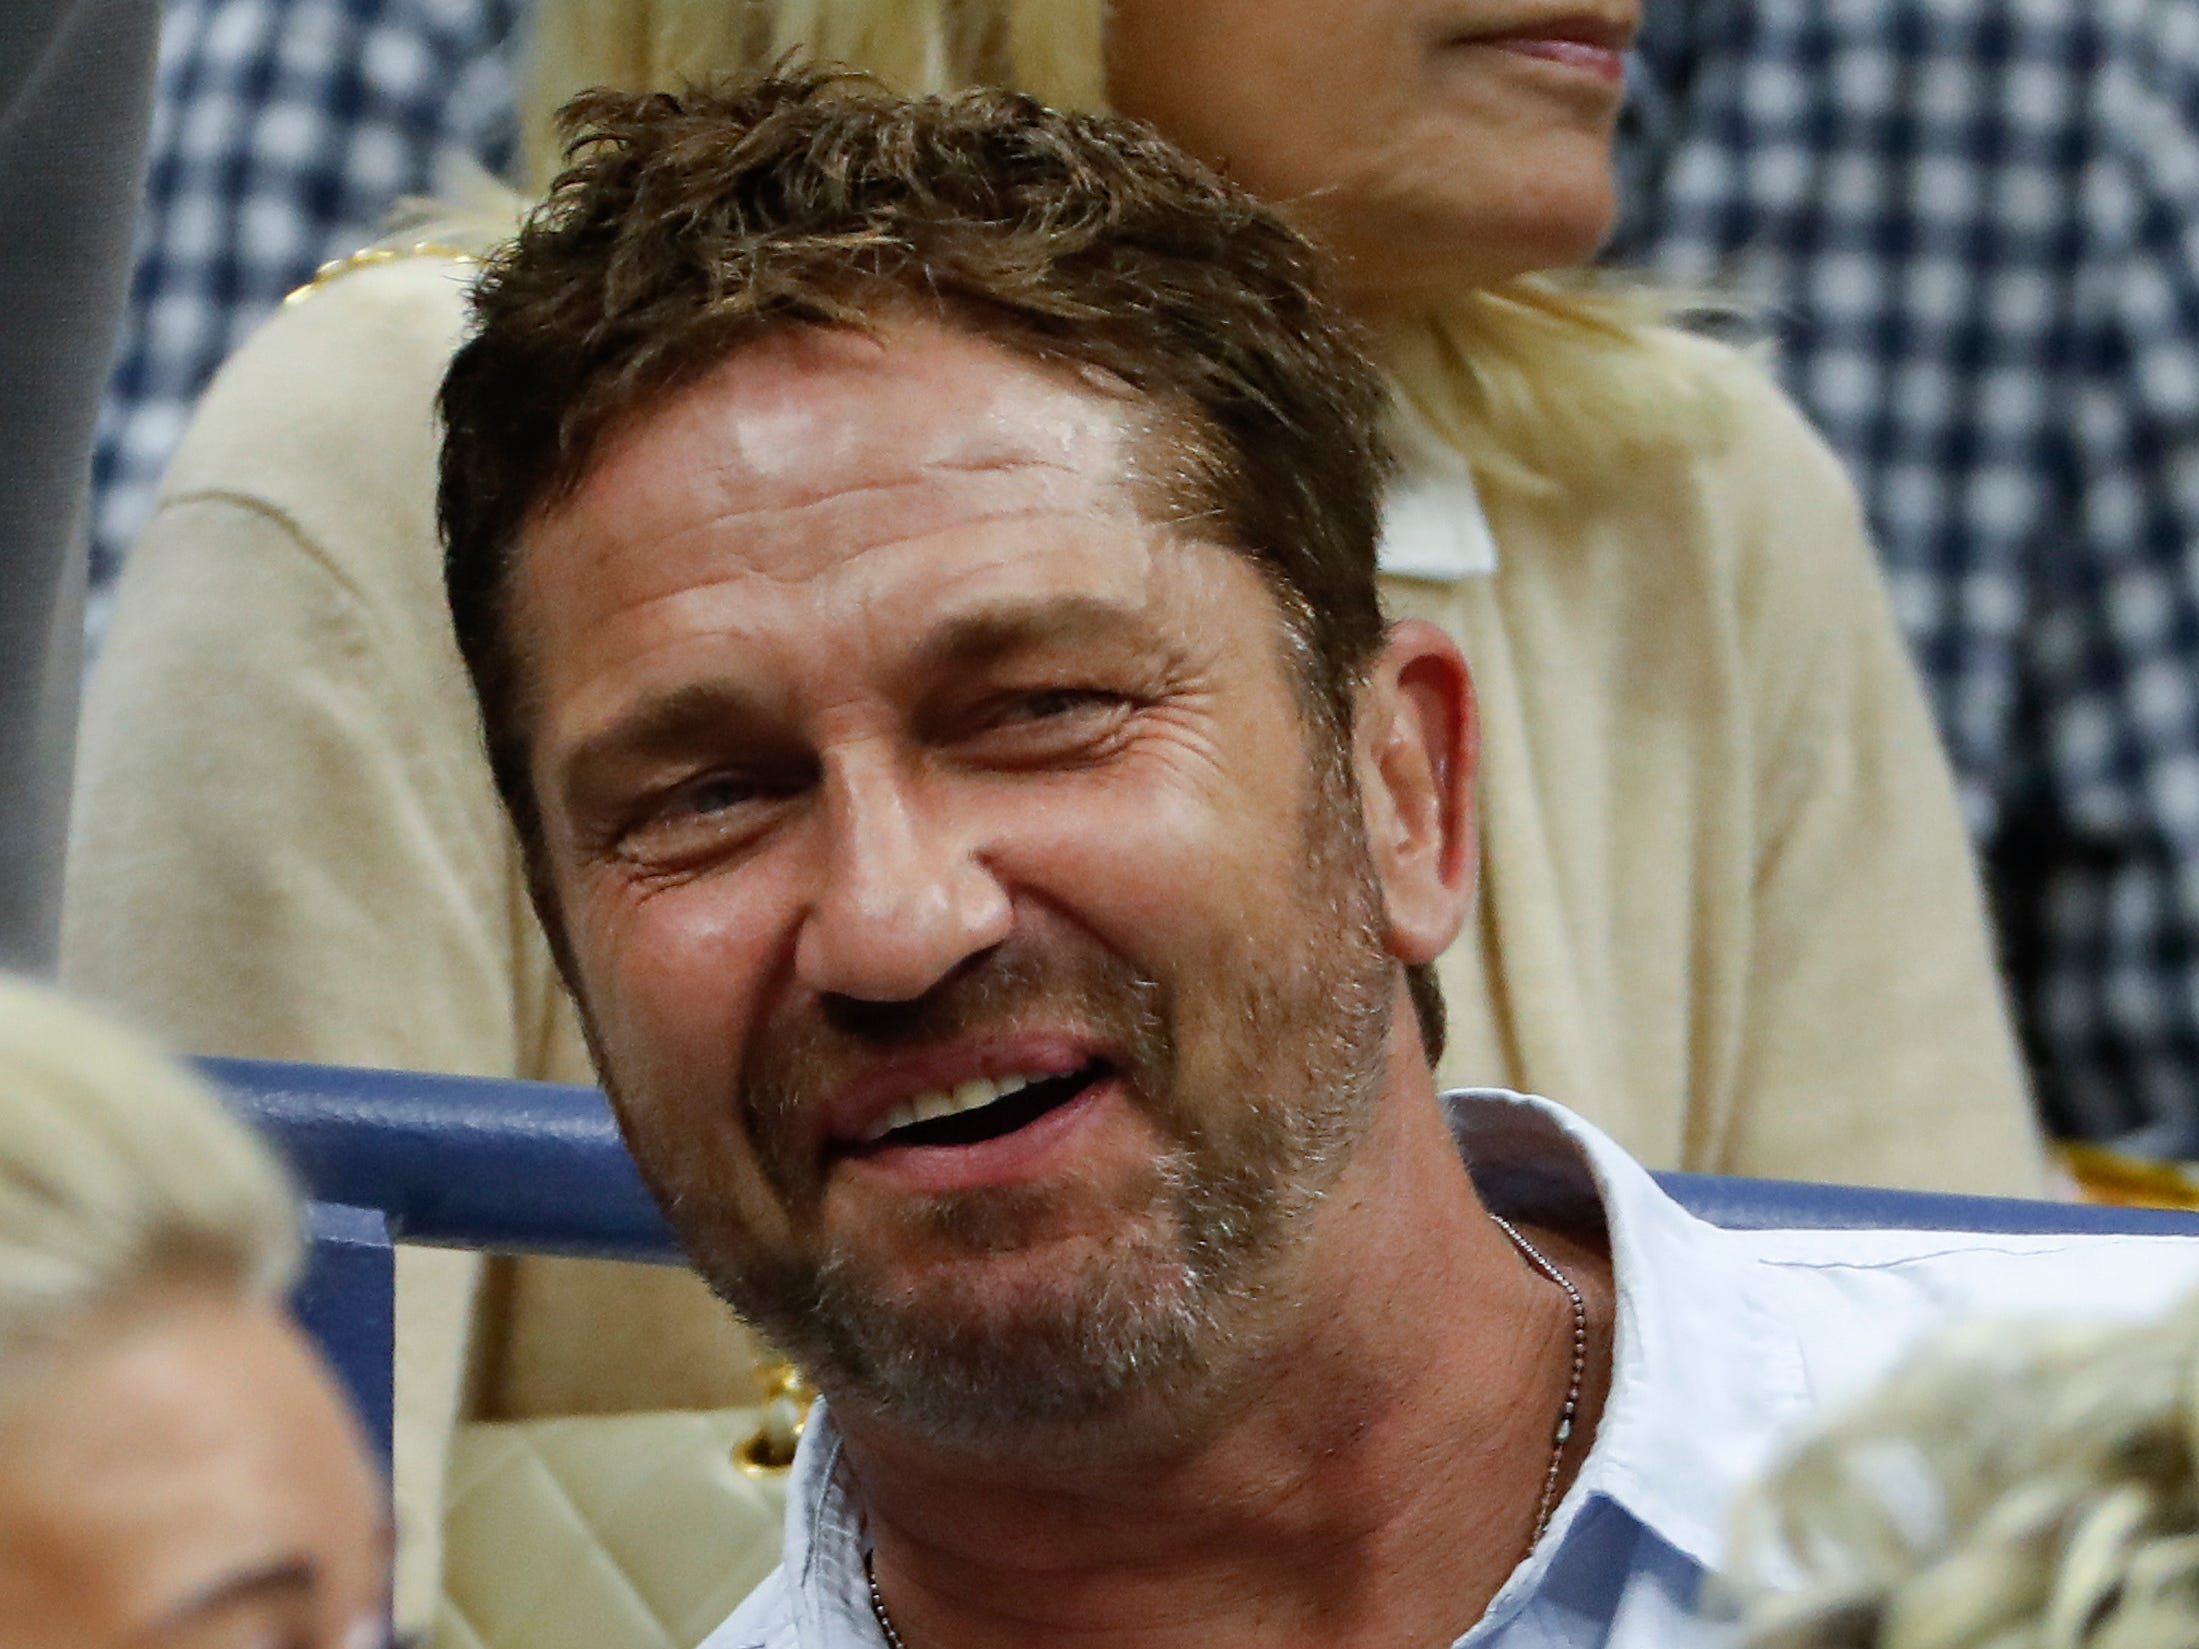 Actor Gerard Butler watches the men's final between Novak Djokovic and Juan Martin del Potro.